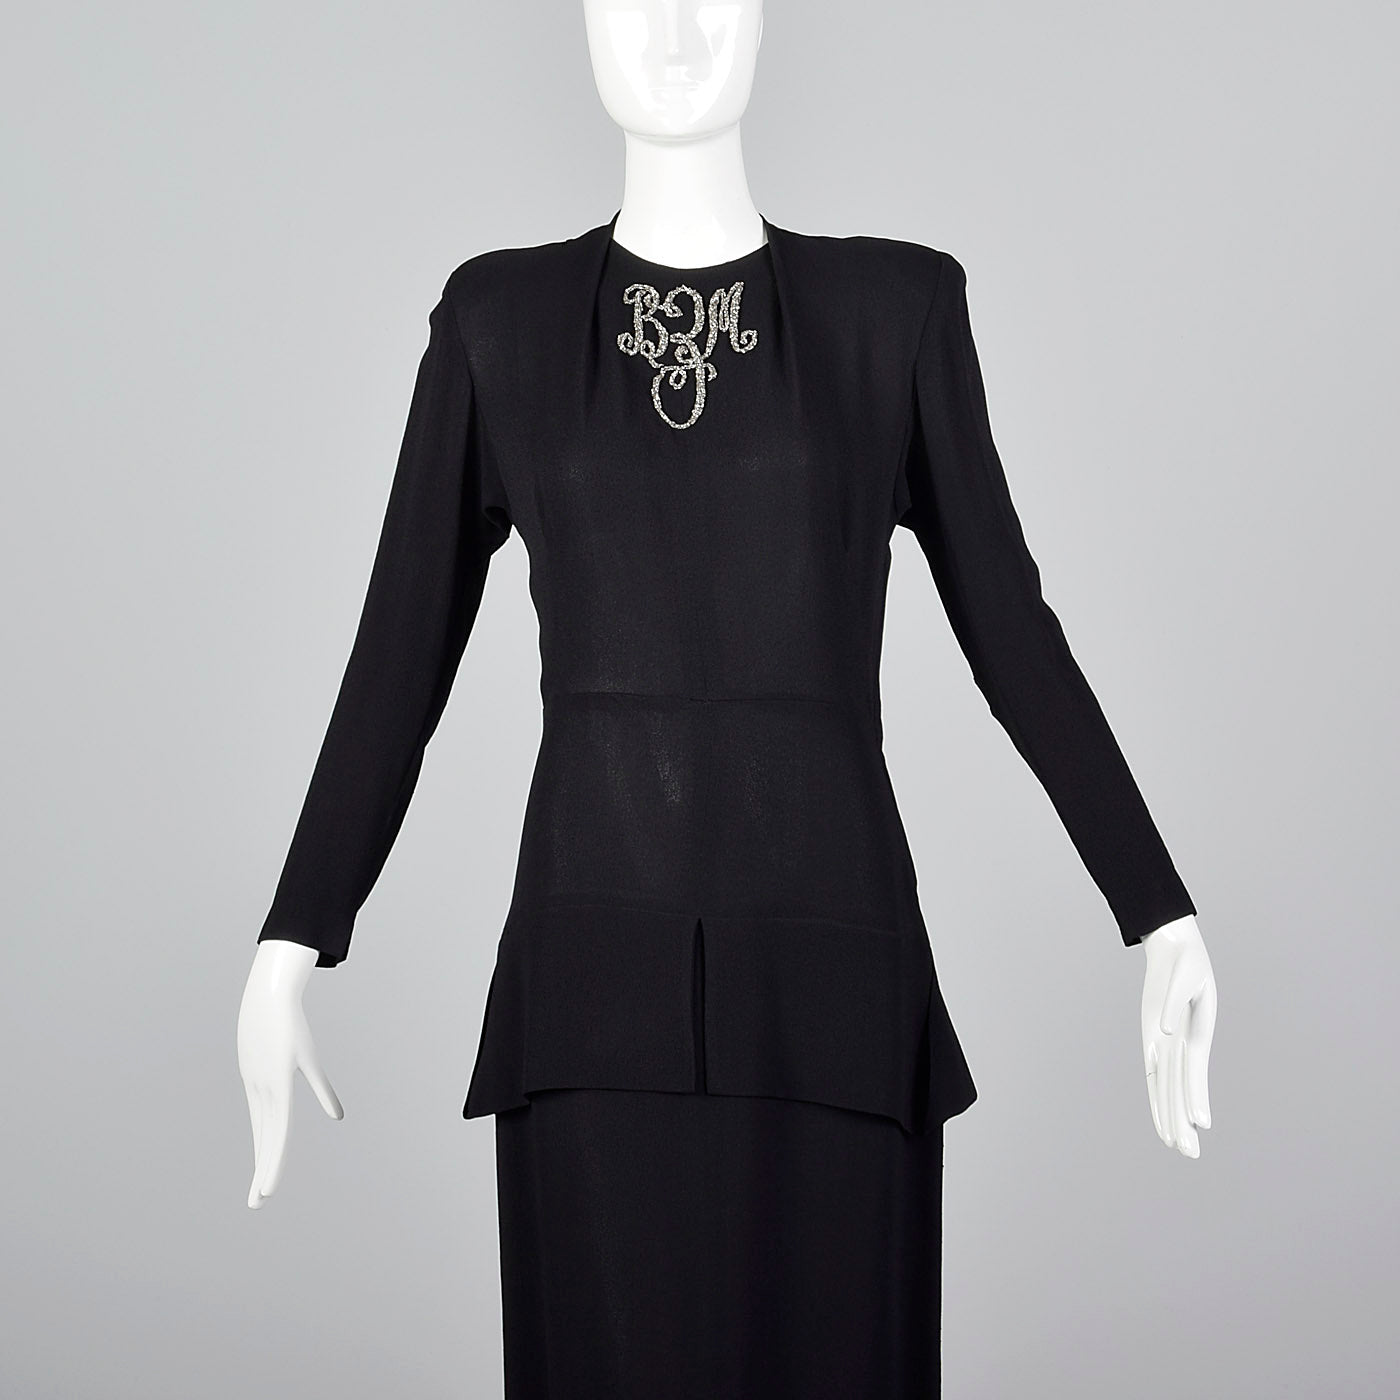 1940s Black Rayon Dress with Silver Beaded Monogram